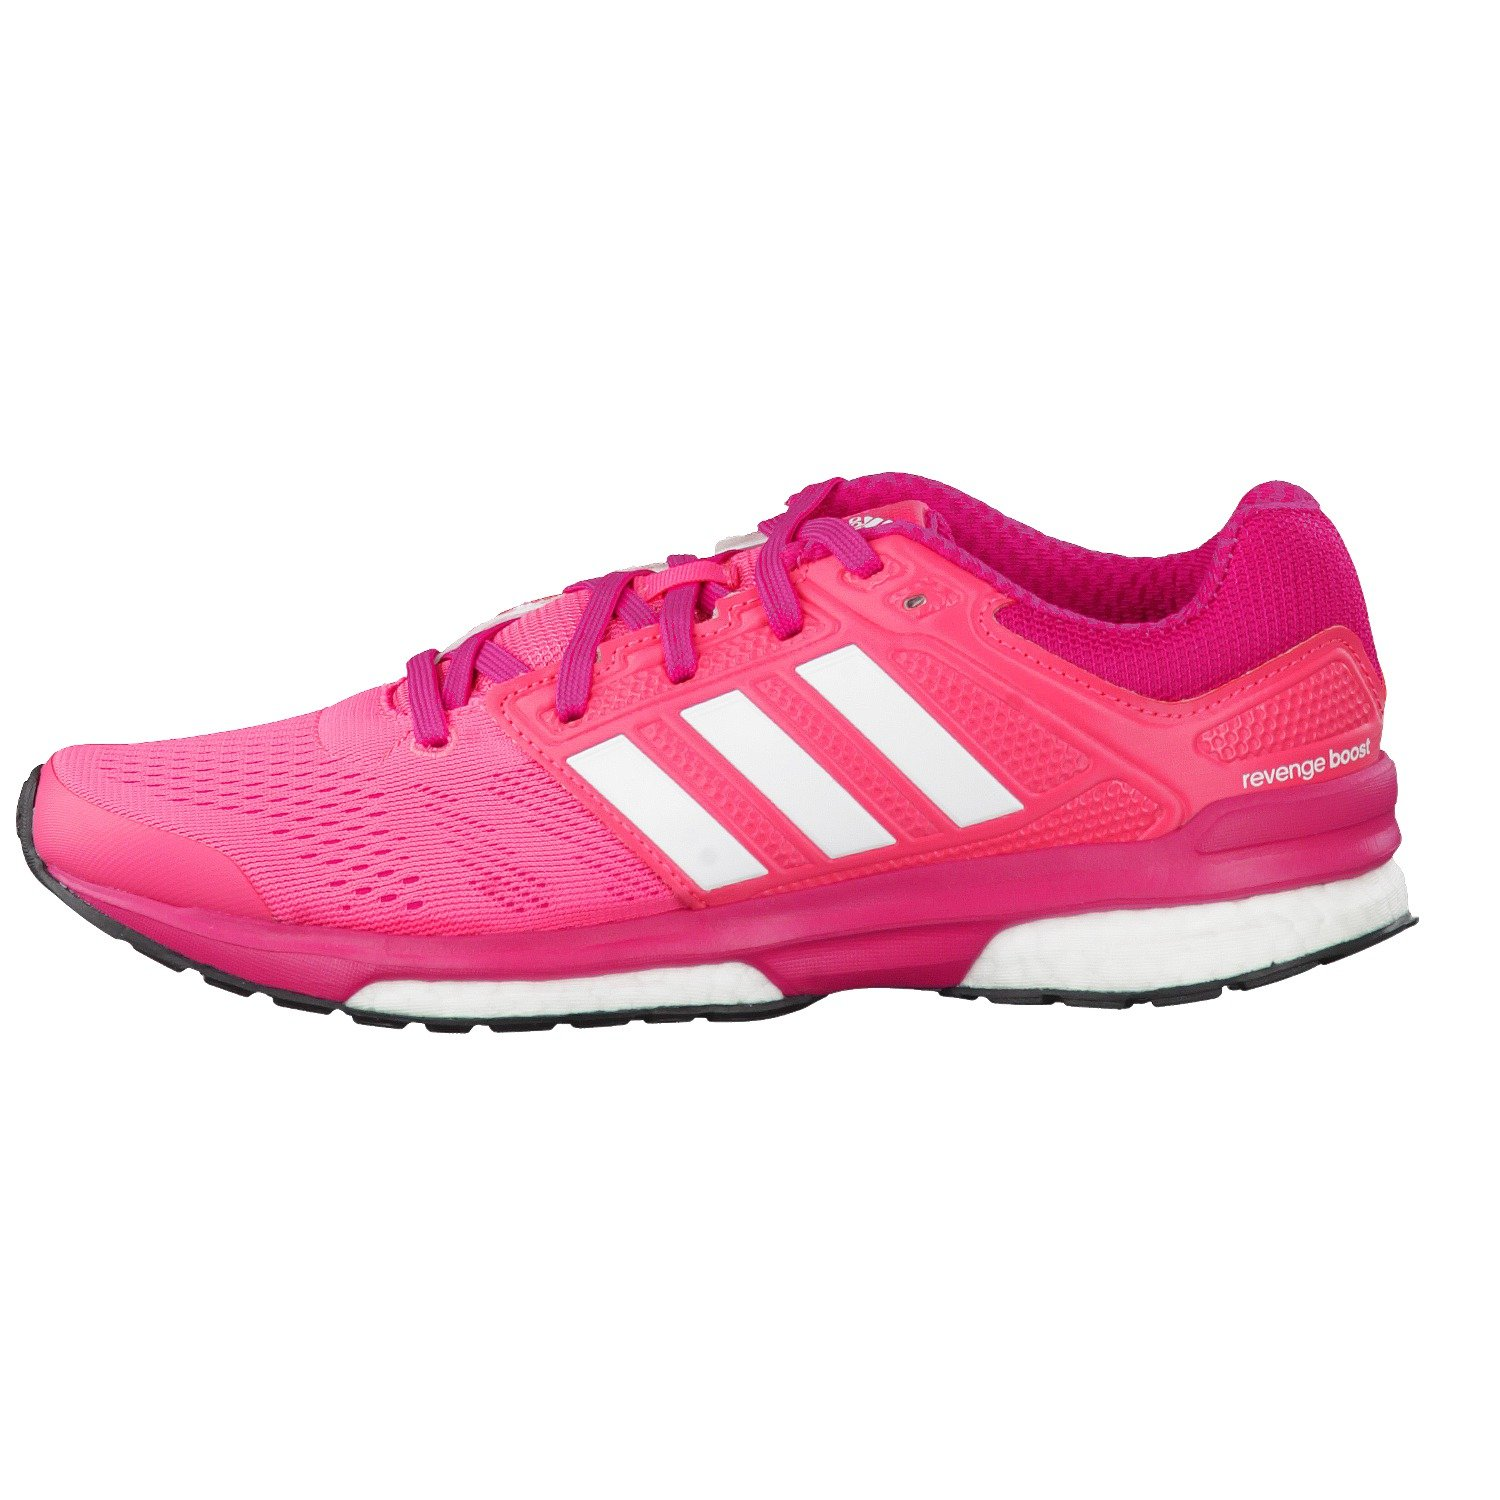 adidas revenge boost 2 mujer